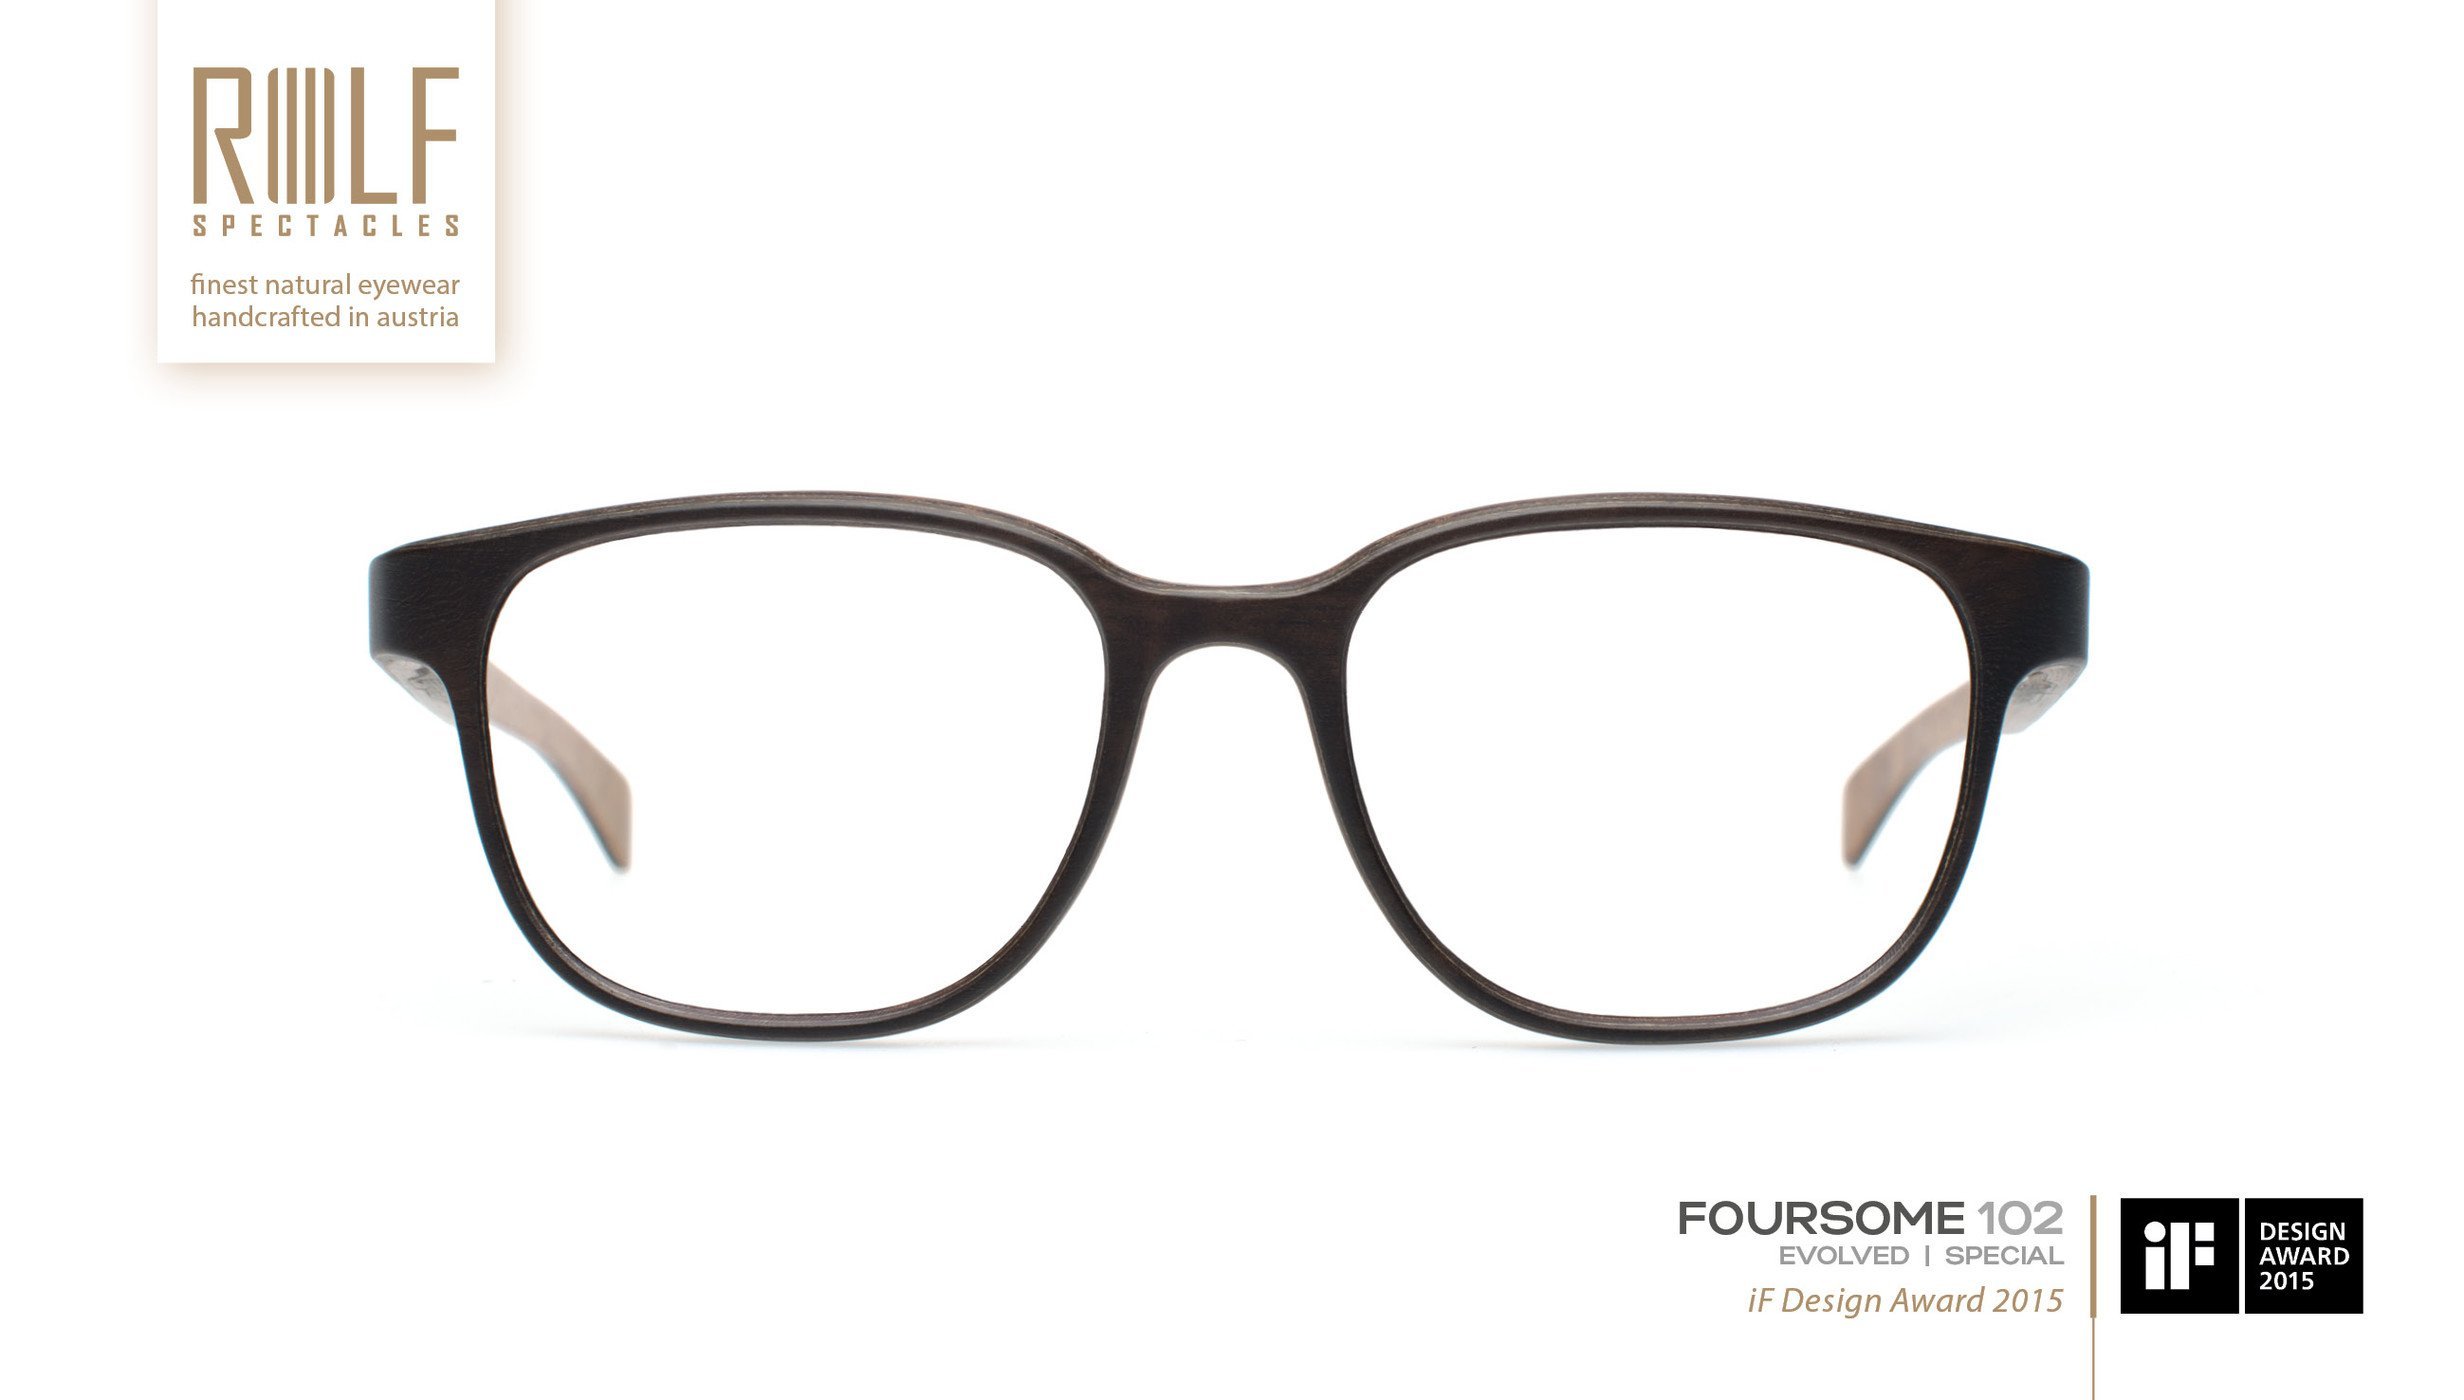 a1570bbf0c ROLF Spectacles wins iF Design Award 2015